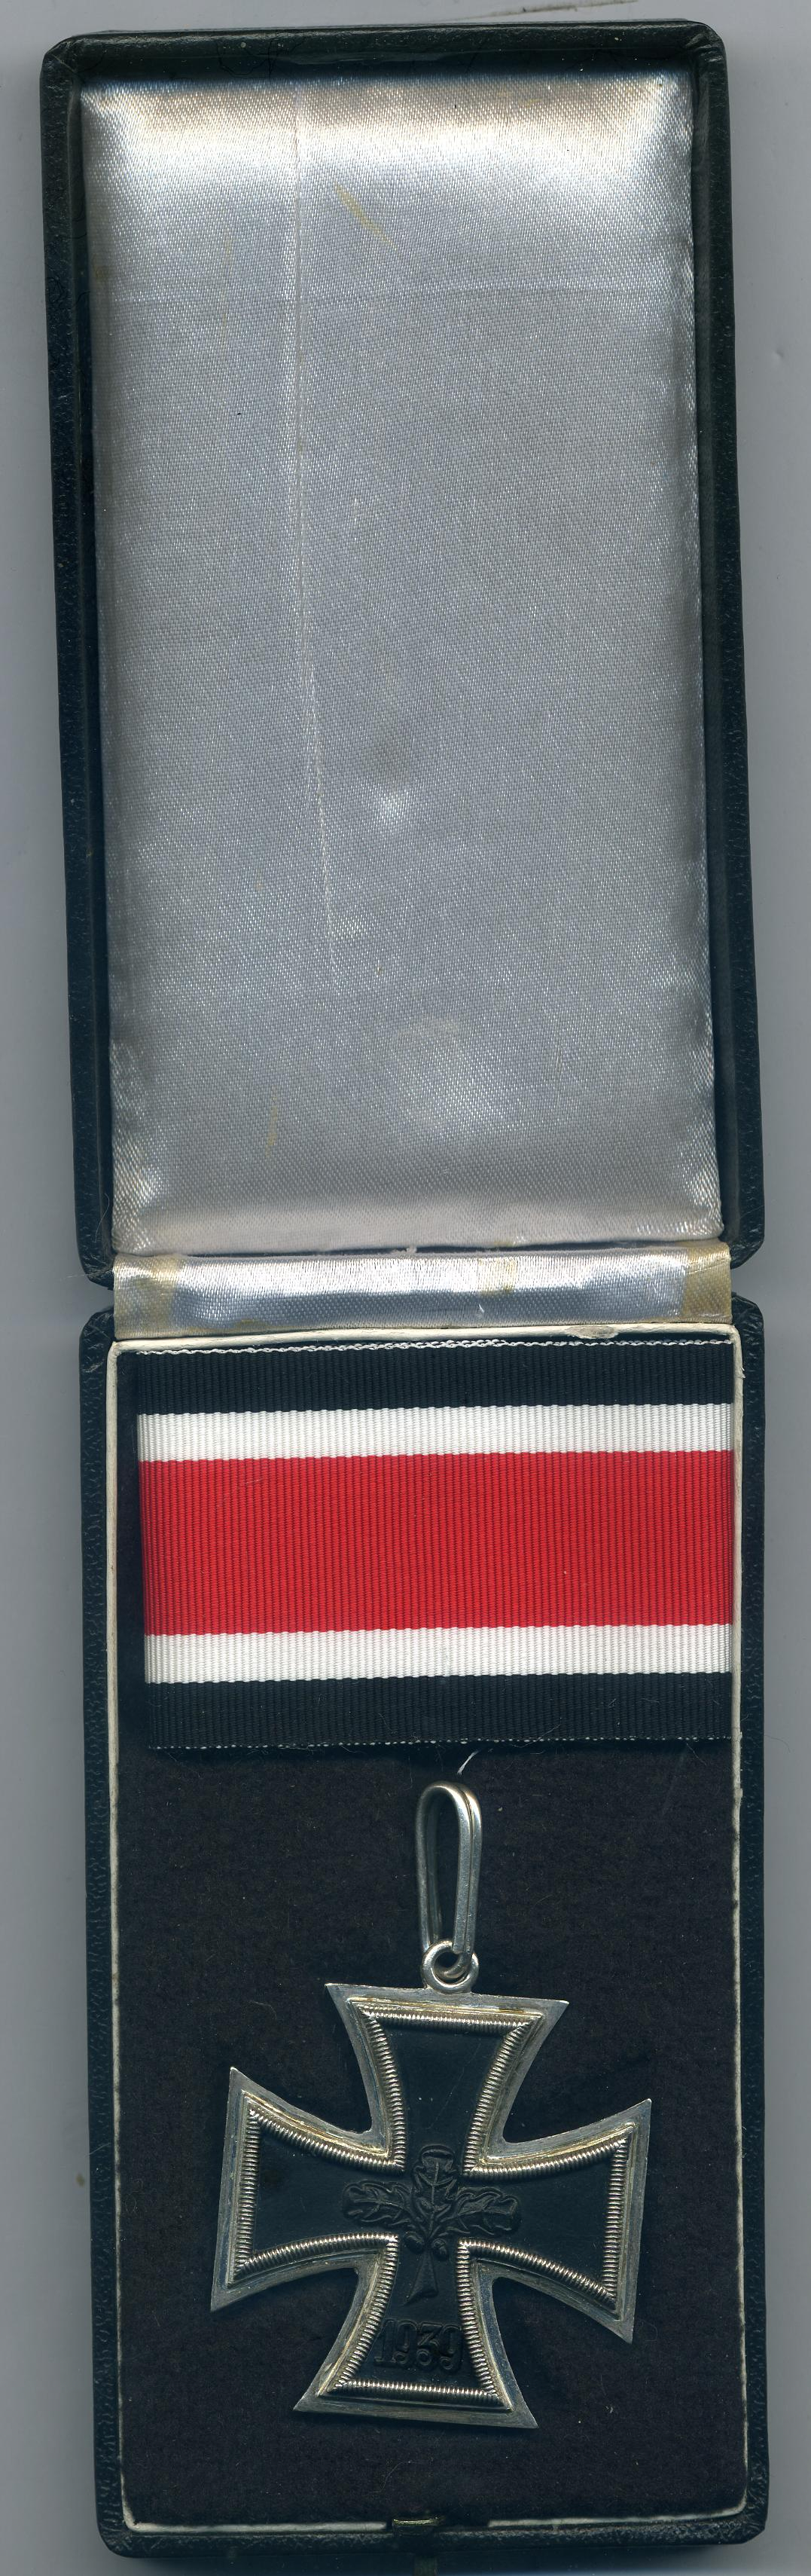 A Nice Scarce example of an Early 1957 Knight's Cross at WWW.Thirdreichmedals.com